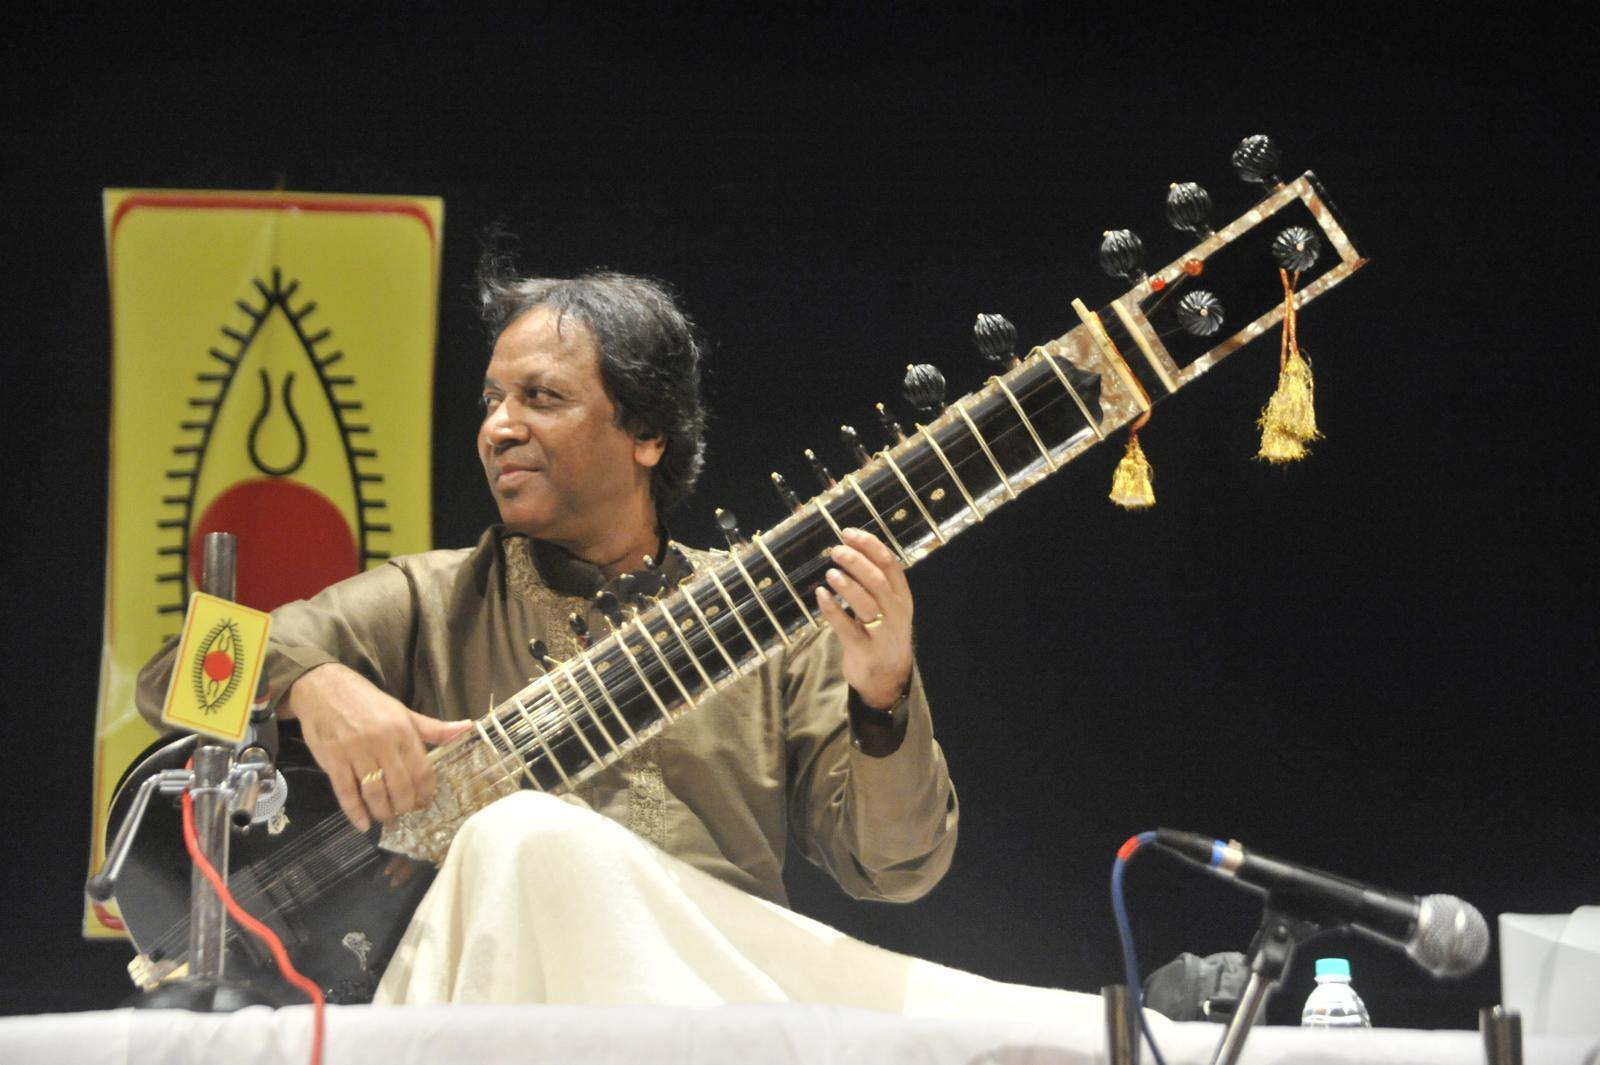 Sitar maestro Us. Shahid Pervez soothed the early hours